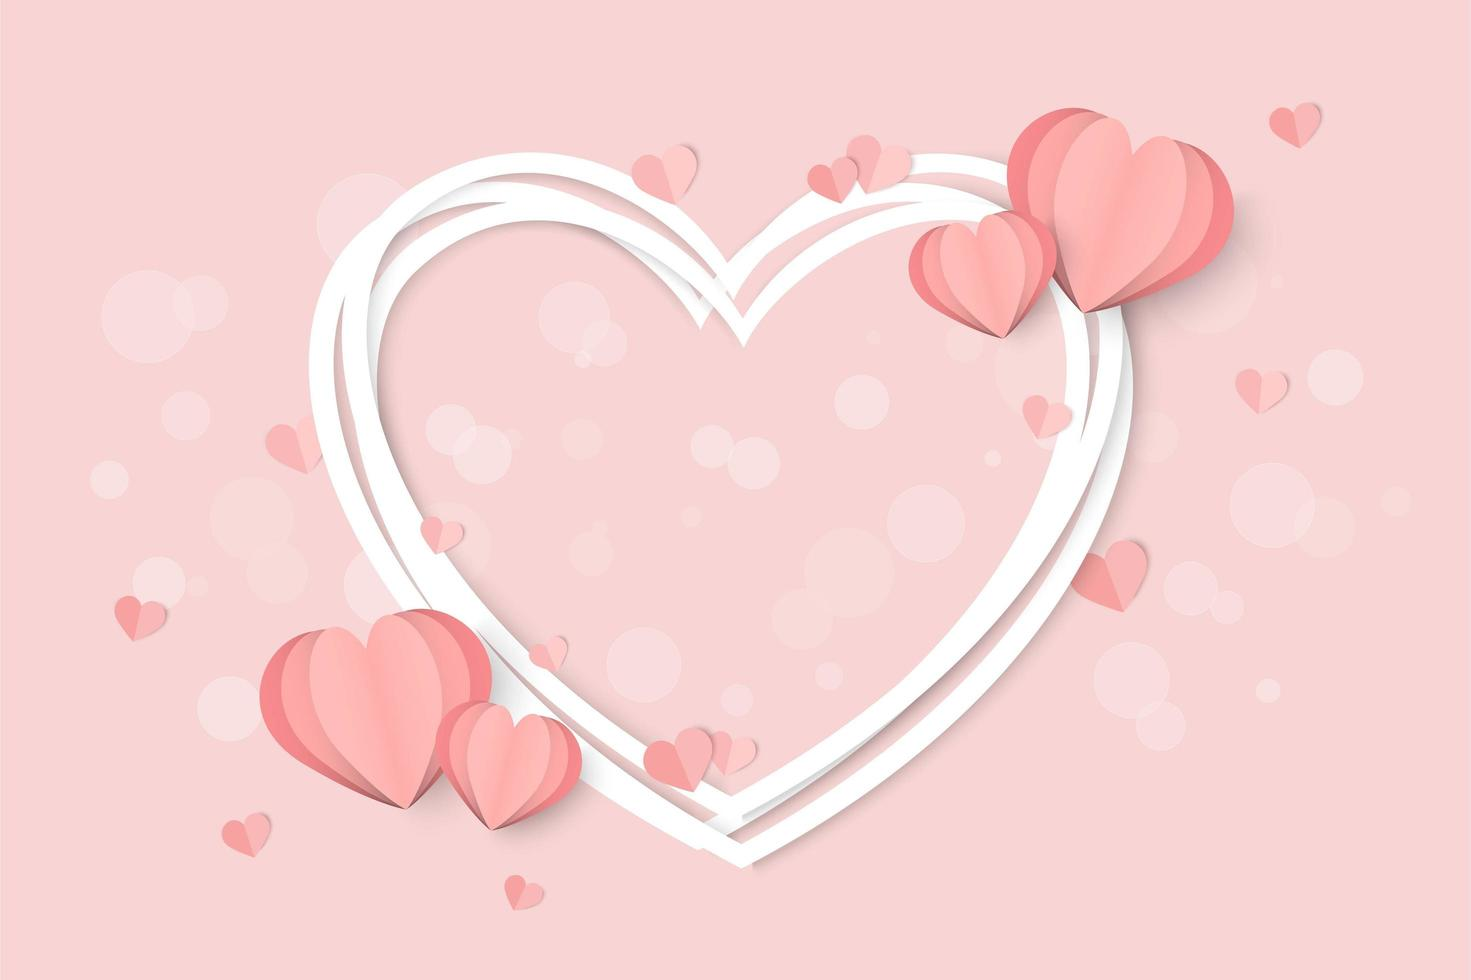 Valentines day pink with white heart frame and heart shapes vector